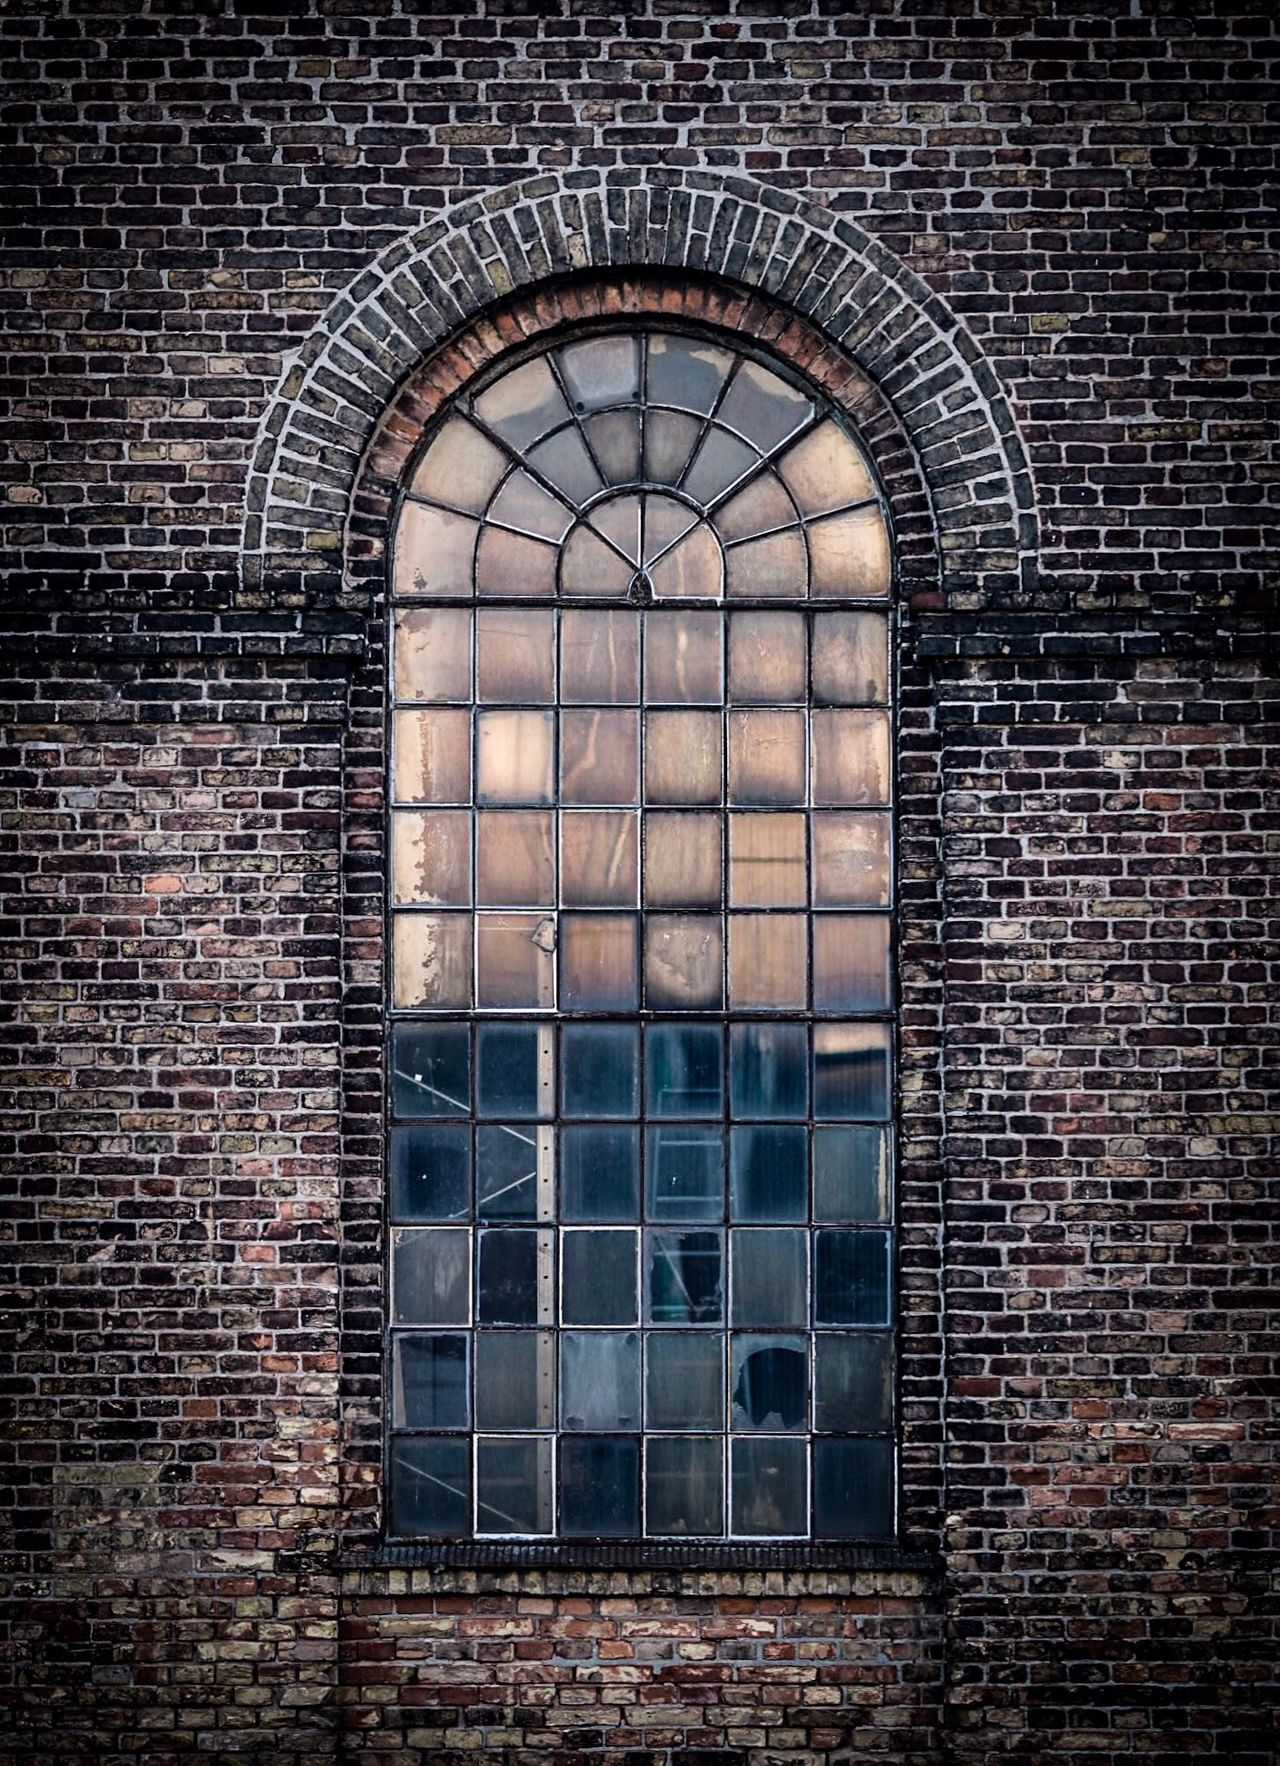 Brick Wall Architecture Window Built Structure History Day Building Exterior No People Outdoors Urban Geometry Copenhagen Olympus OM-D E-M5 Mk.II Olympus The Architect - 2017 EyeEm Awards City Façade Reflection Architecture Old Buildings Old Industrial Glass Old Town Old But Awesome Vintage